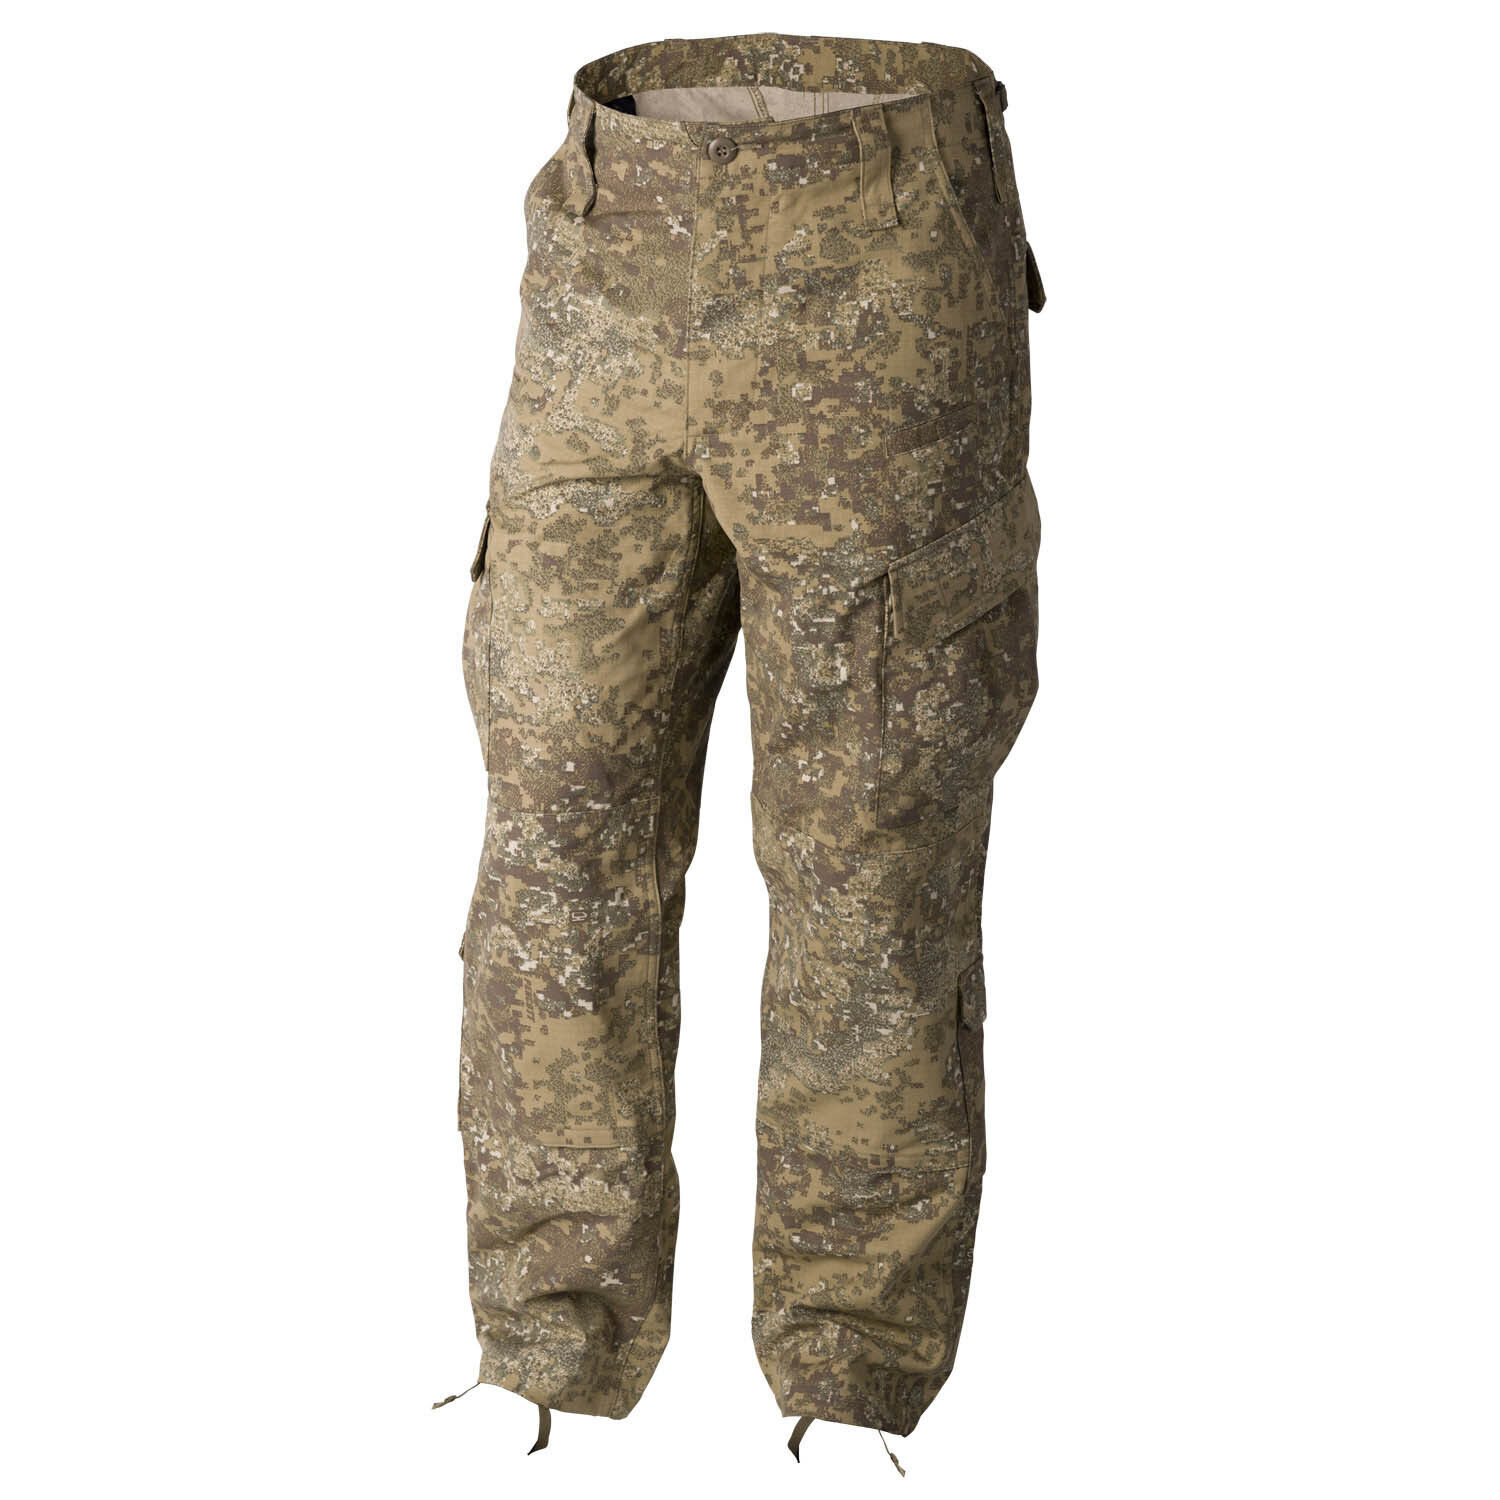 Helikon TEX Tactical Combat C P U pencott Badles Pants Pantaloni LR gree Regular